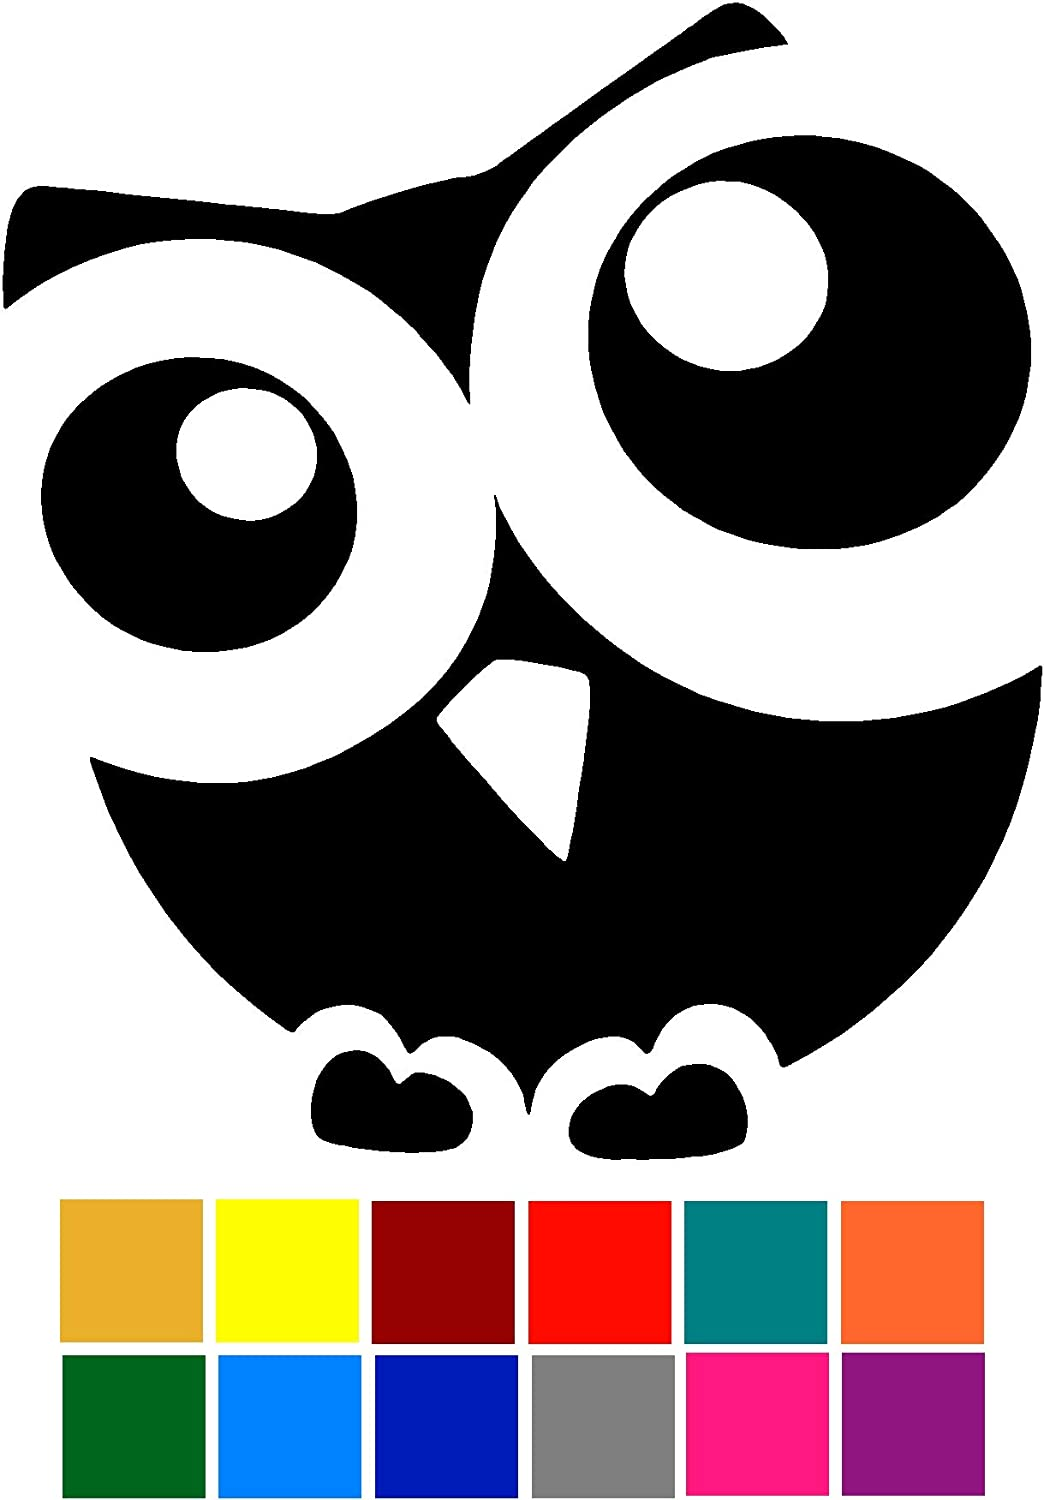 Owl Cute Big Eyes Decal Sticker Vinyl Car Window Tumblers Wall Laptops Cellphones Phones Tablets Ipads Helmets Motorcycles Computer Towers V and T Gifts